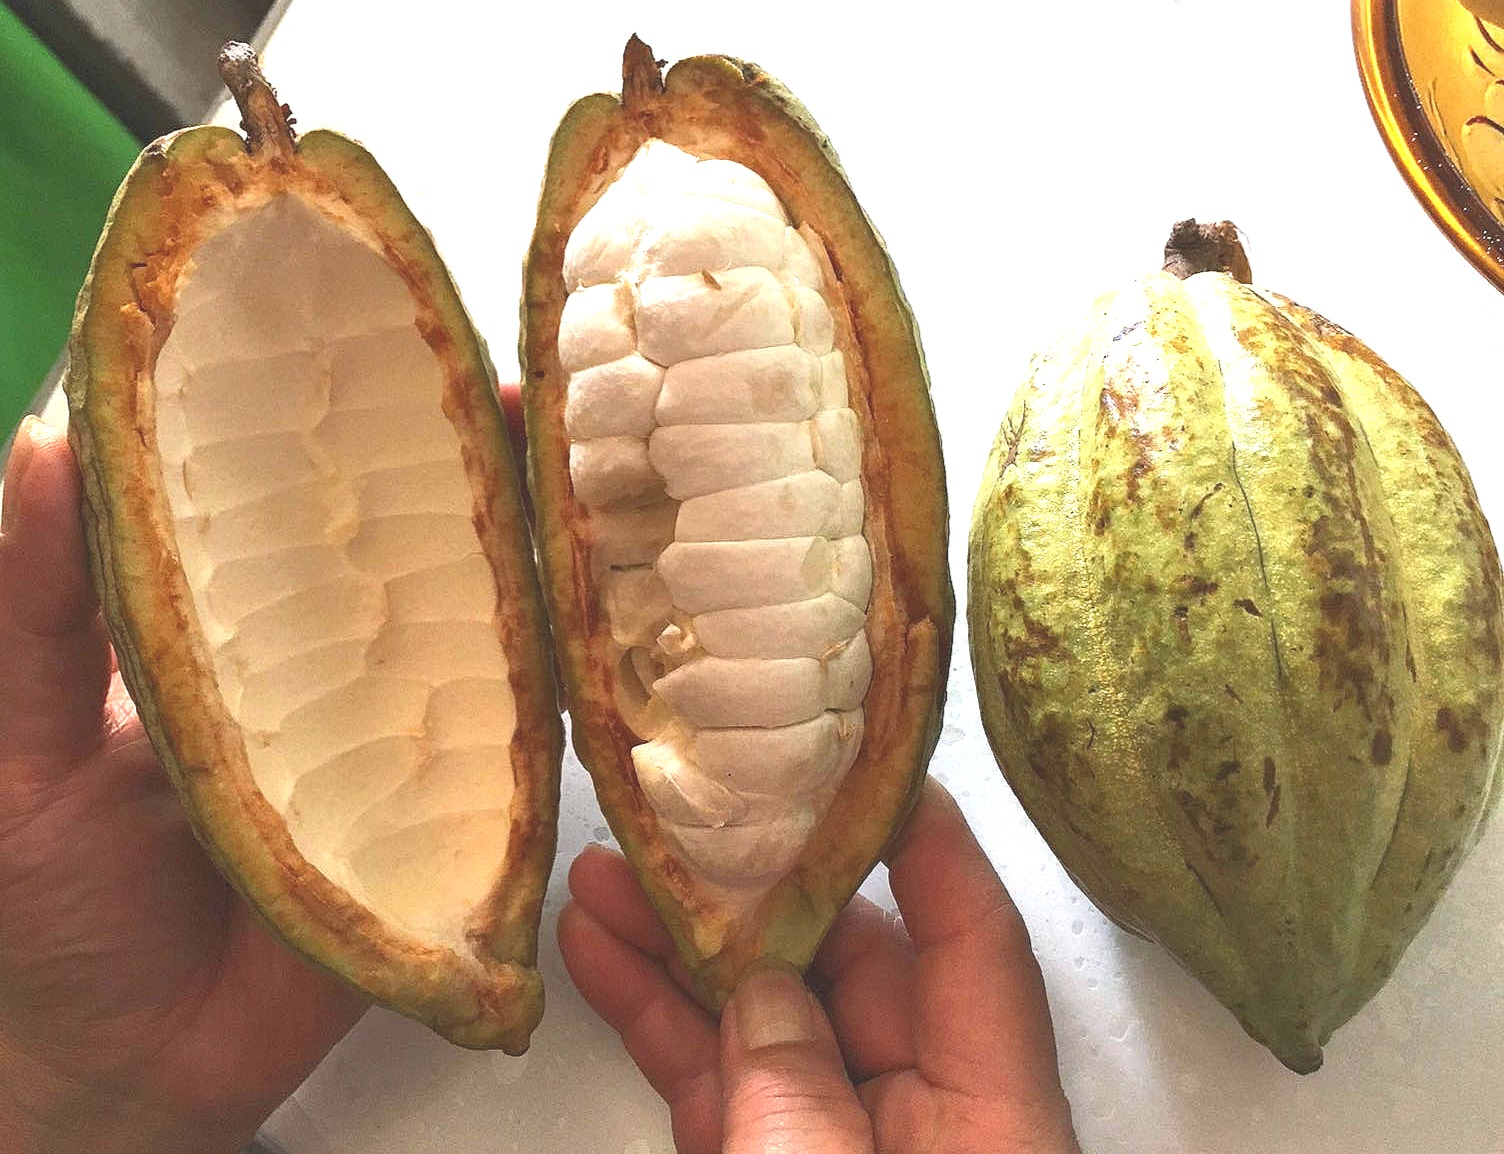 The white pulp is the fruit of the cacao tree, contained within the pod. You can see segments of this pulp here. Each segment of fruit also contains a cocoa bean. Image credit: Geoseph Domenichiello